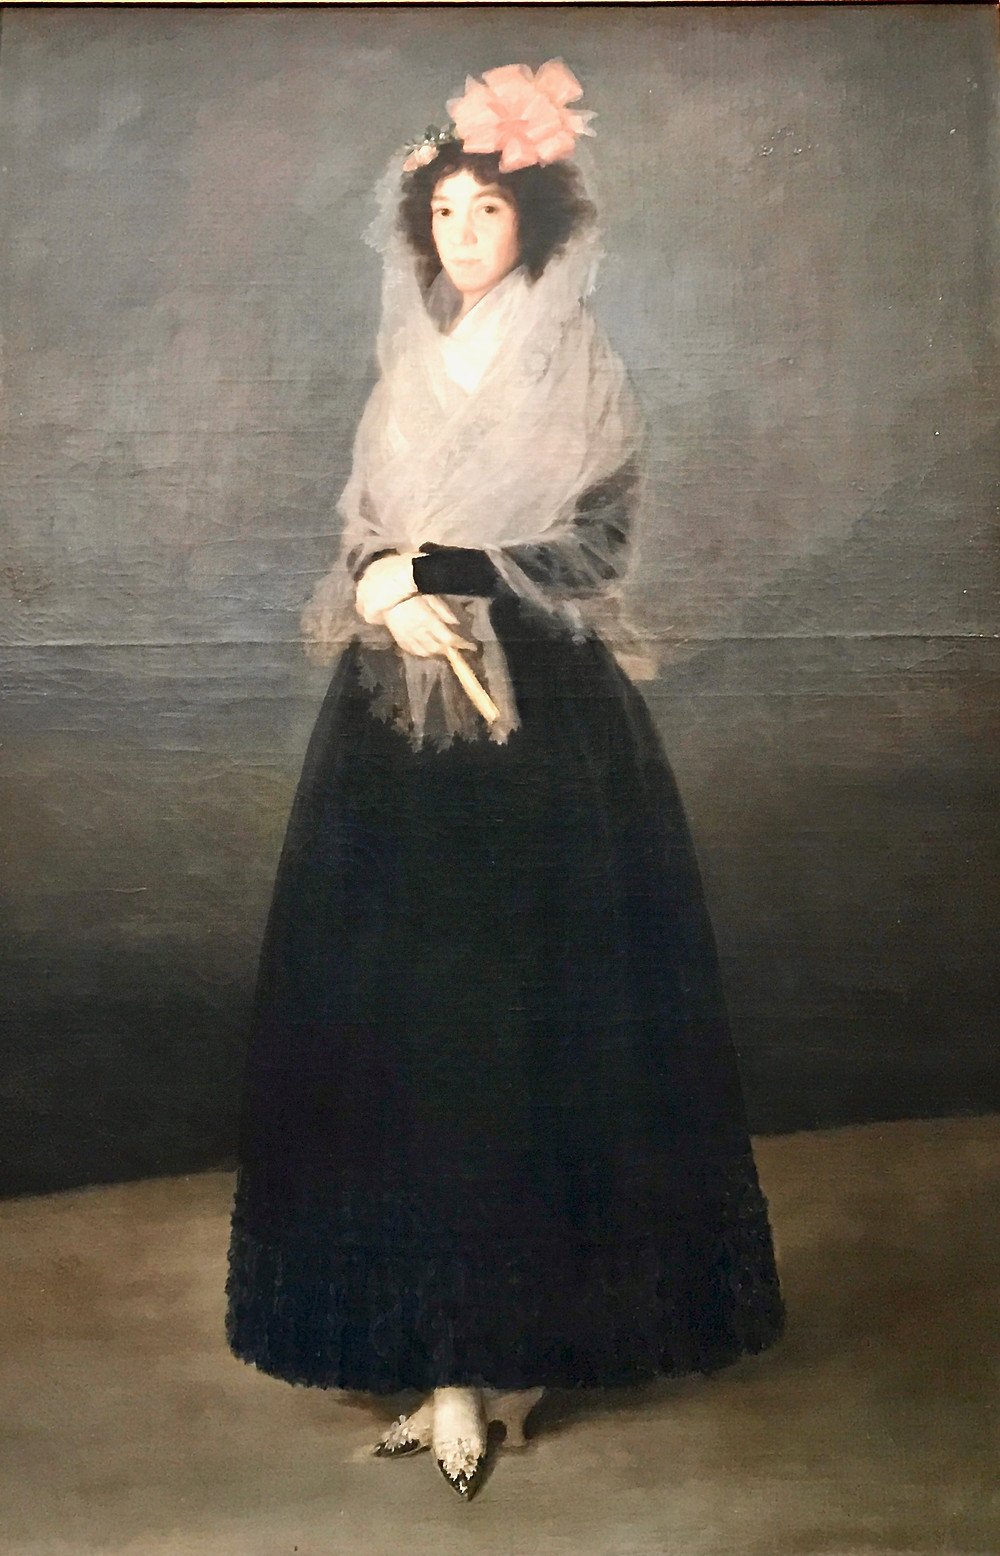 The Countess del Carpio by Goya at the Louvre